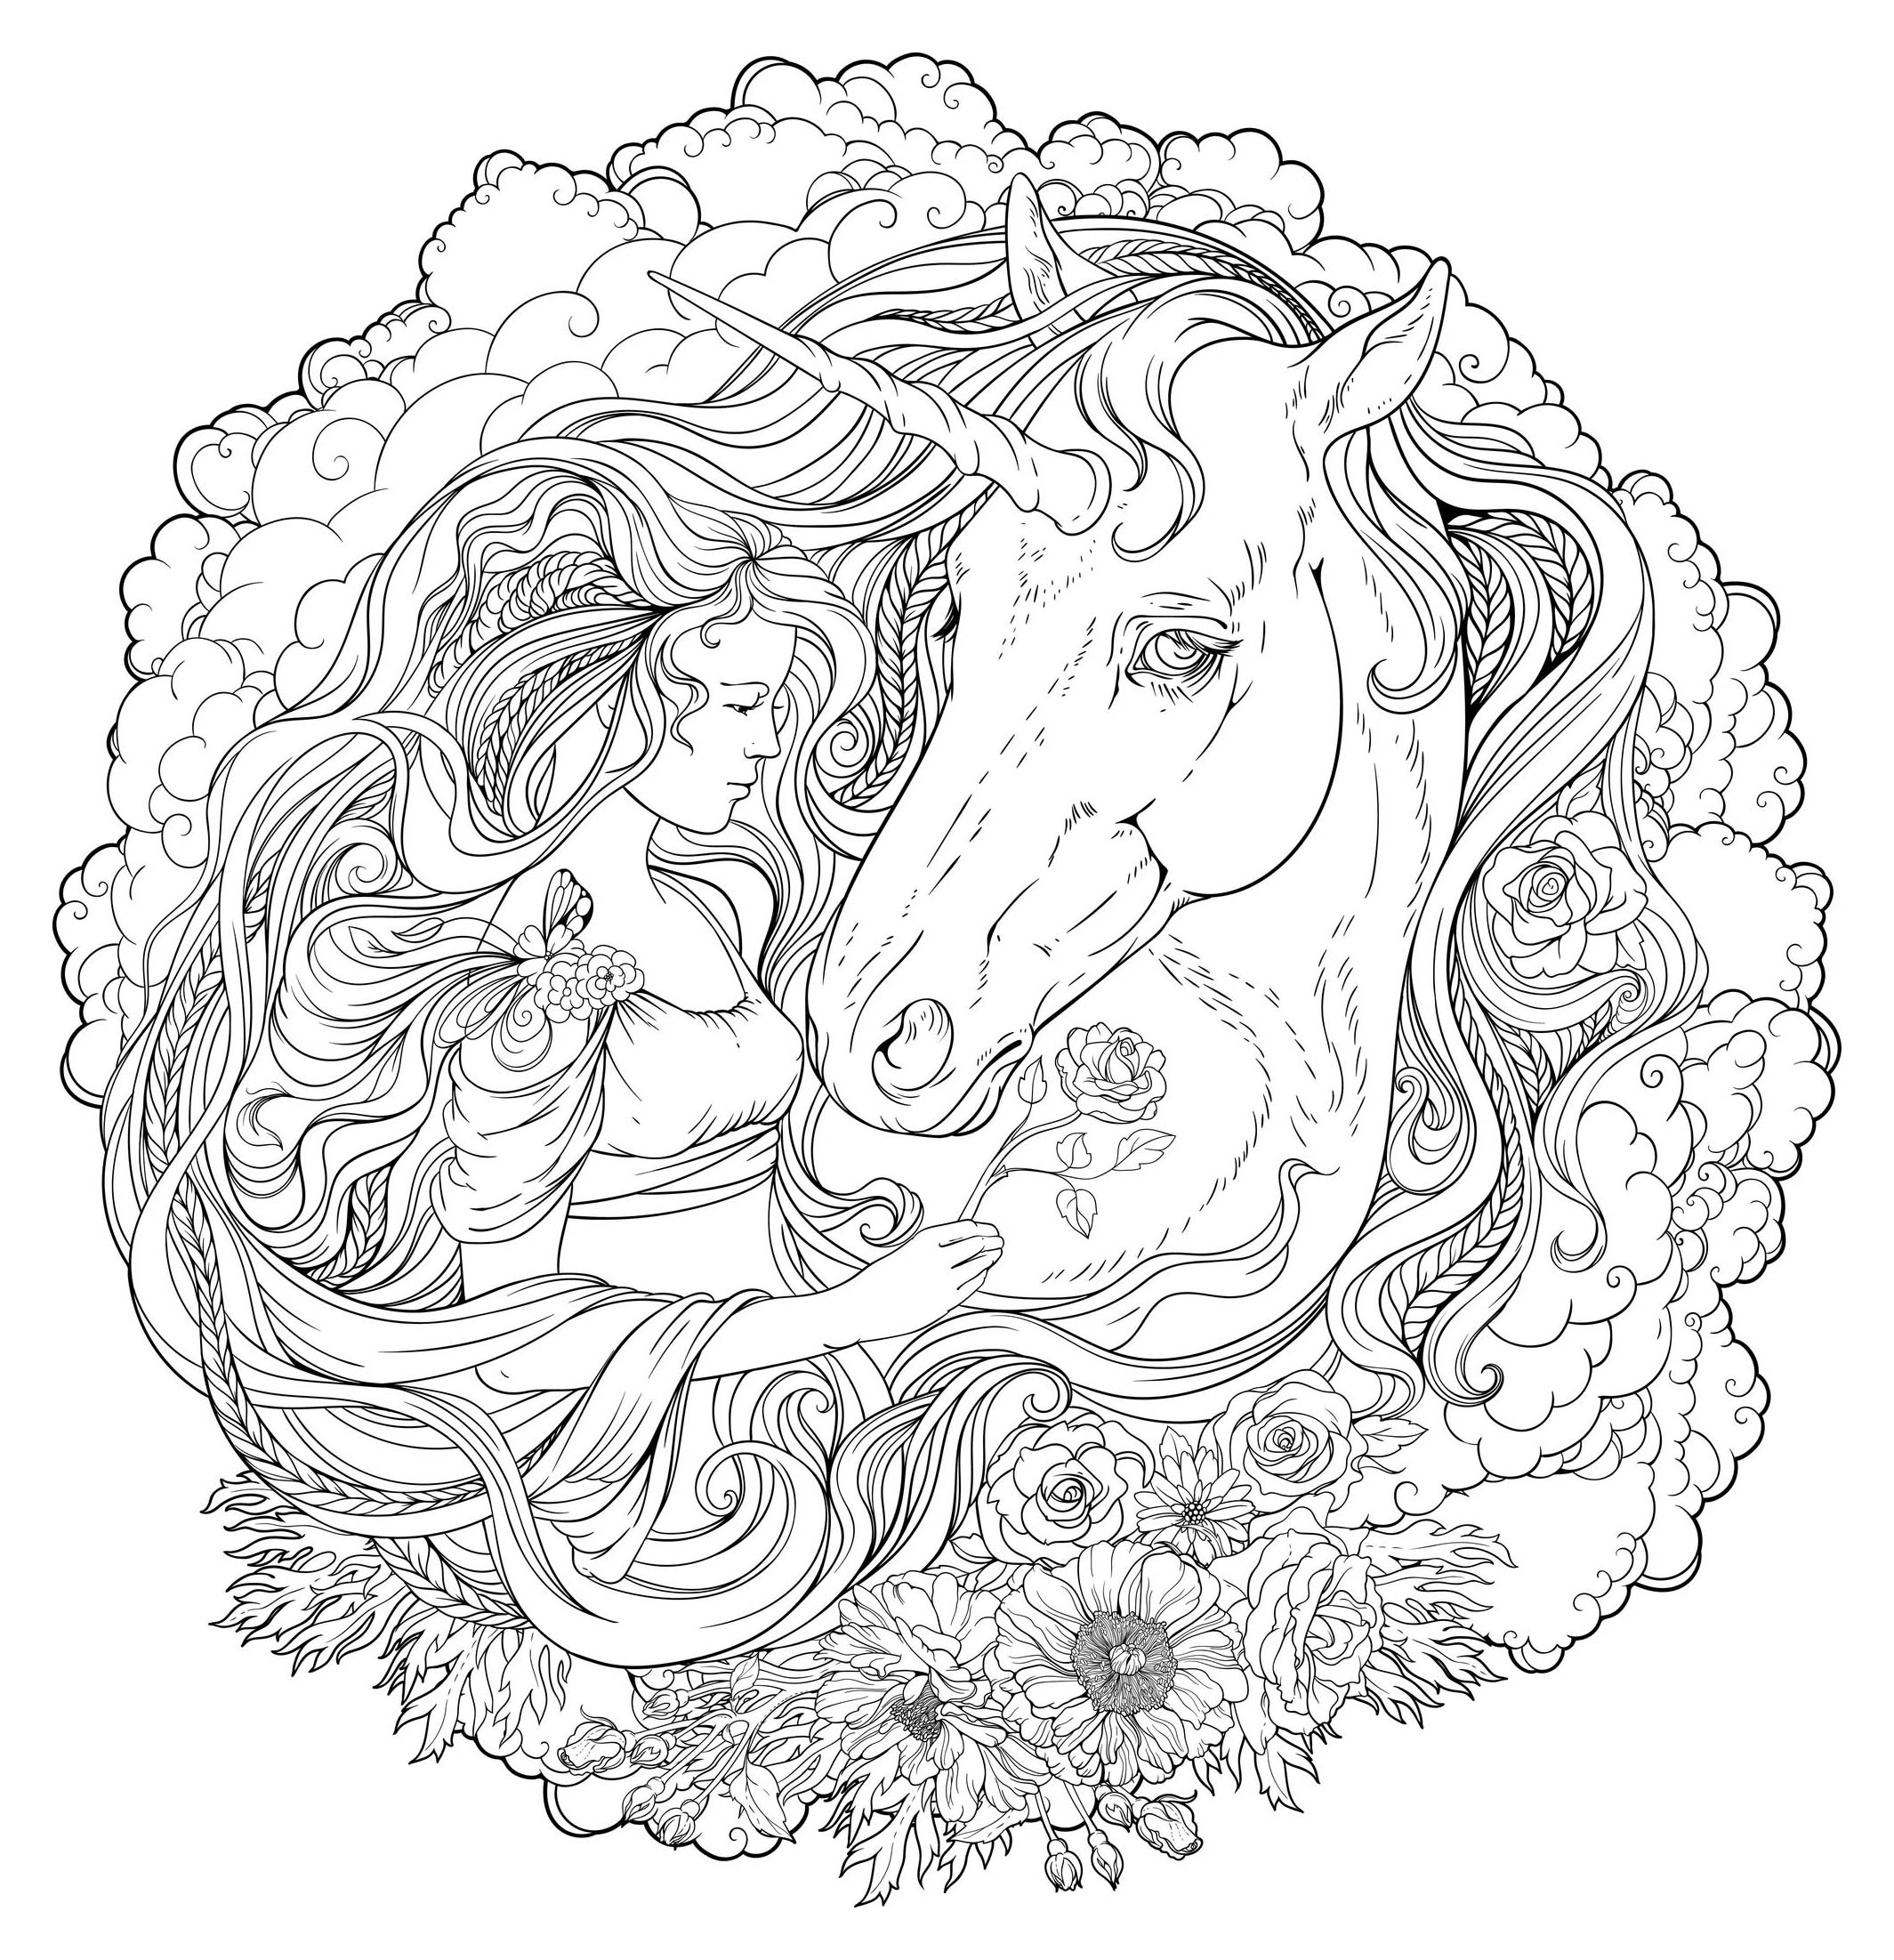 Unicorn and girl in clouds - Unicorns Adult Coloring Pages